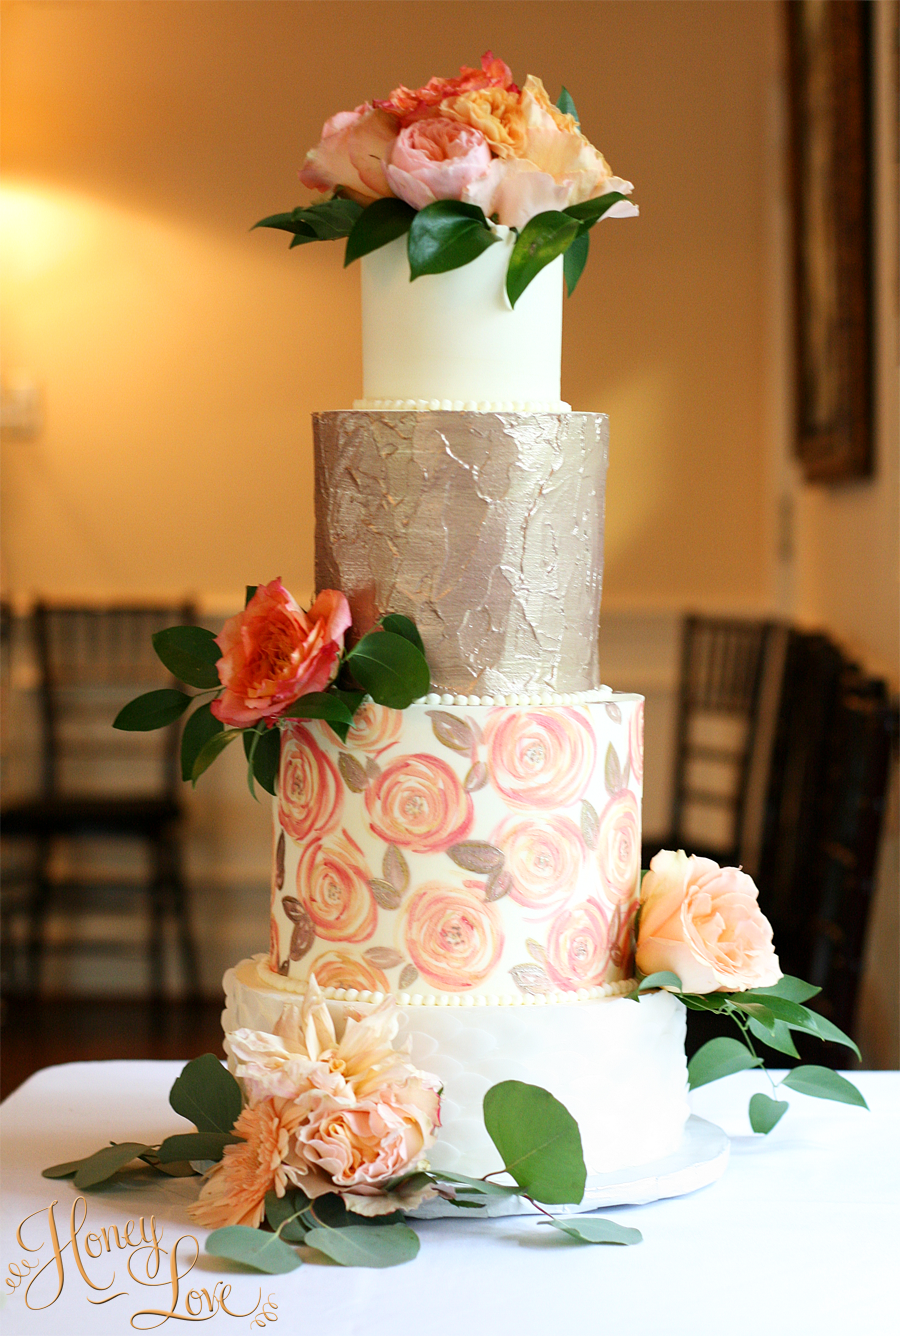 This buttercream wedding cake has a hand painted floral print and metallic accents. Wafer paper feathers adorn the bottom tier. Fresh flowers add the perfect pop of color.